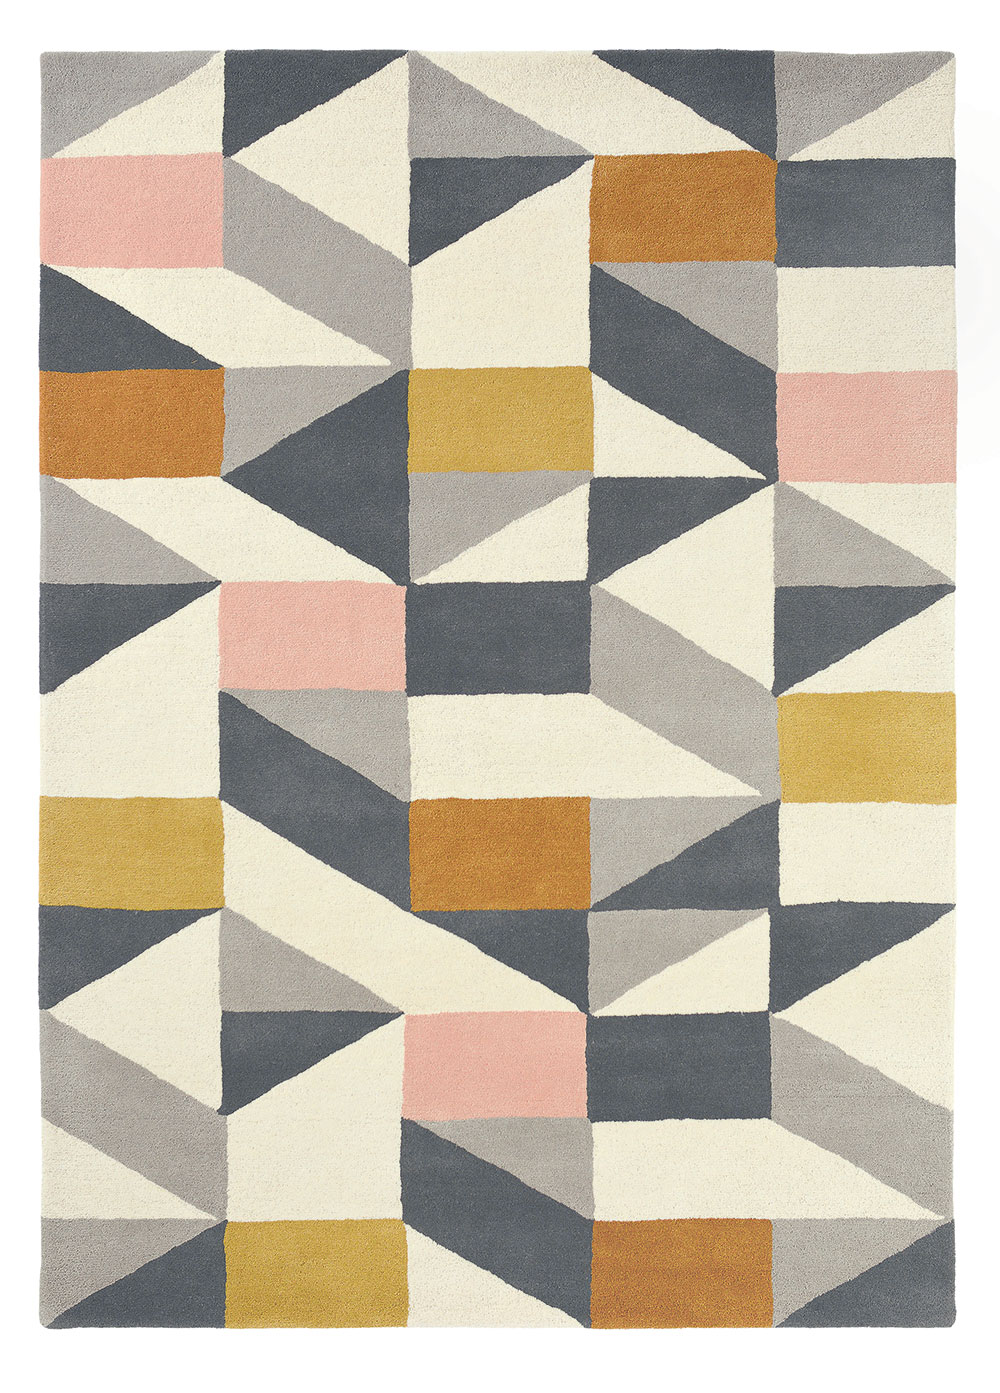 Nuevo Rug - Blush - by Scion